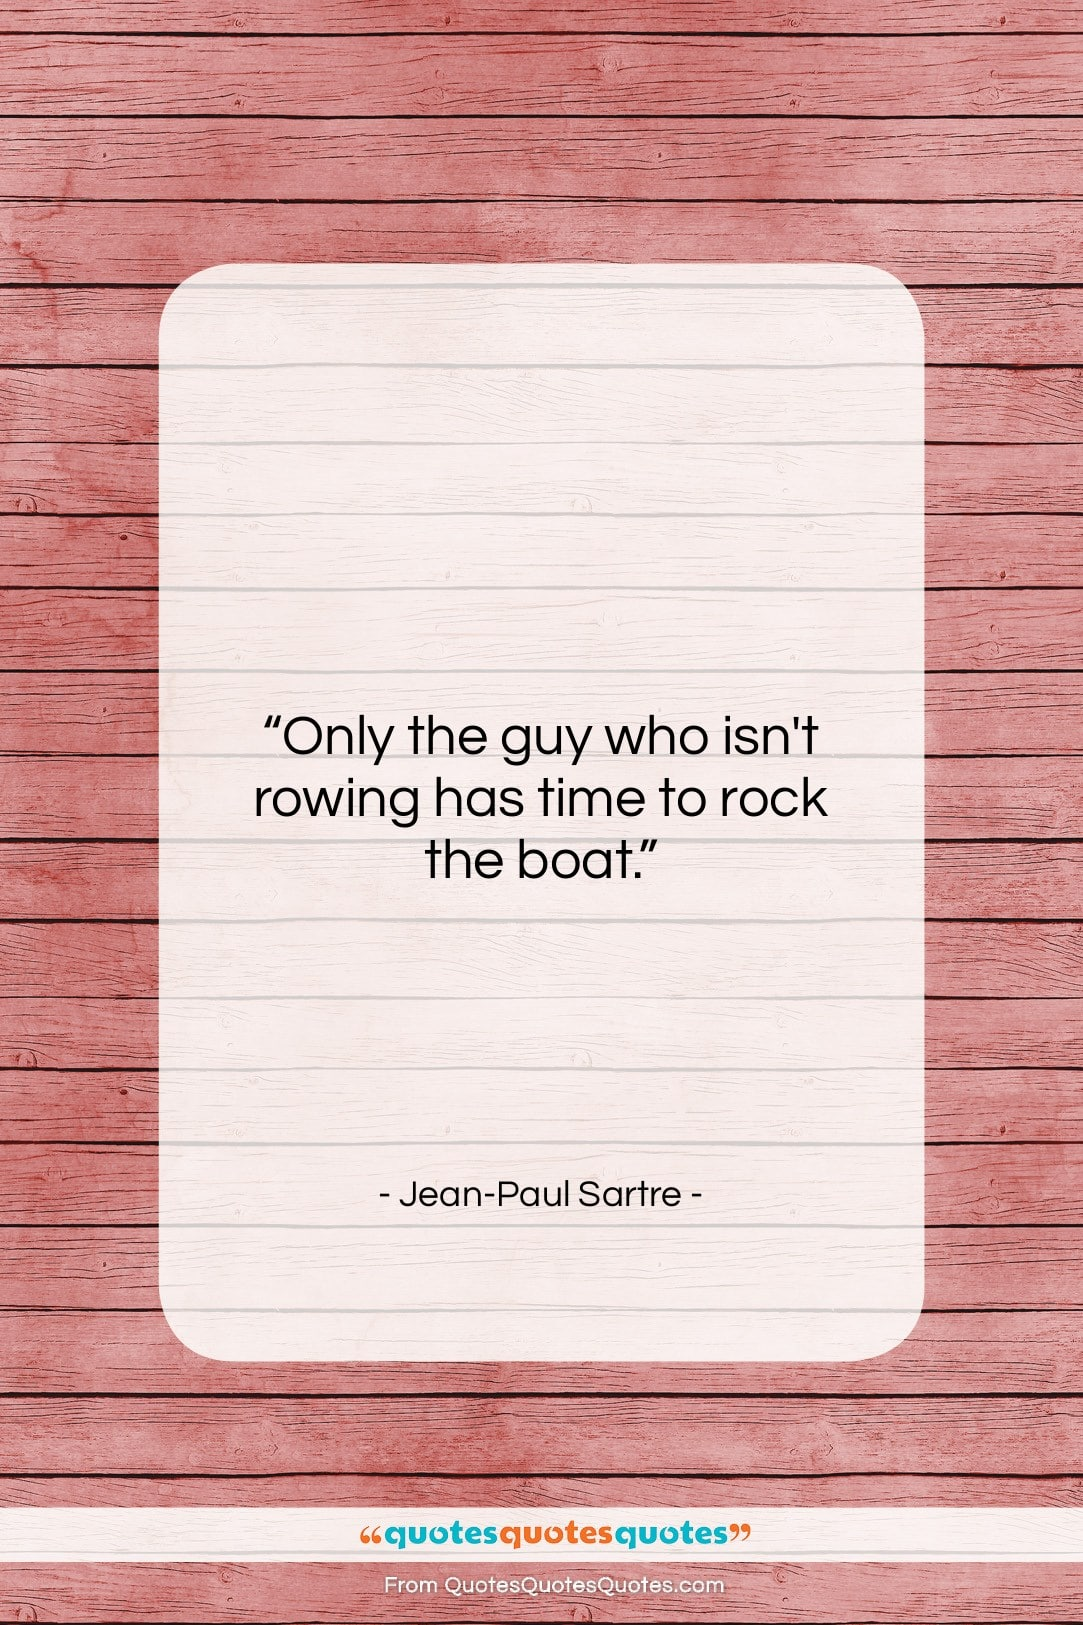 """Jean-Paul Sartre quote: """"Only the guy who isn't rowing has…""""- at QuotesQuotesQuotes.com"""